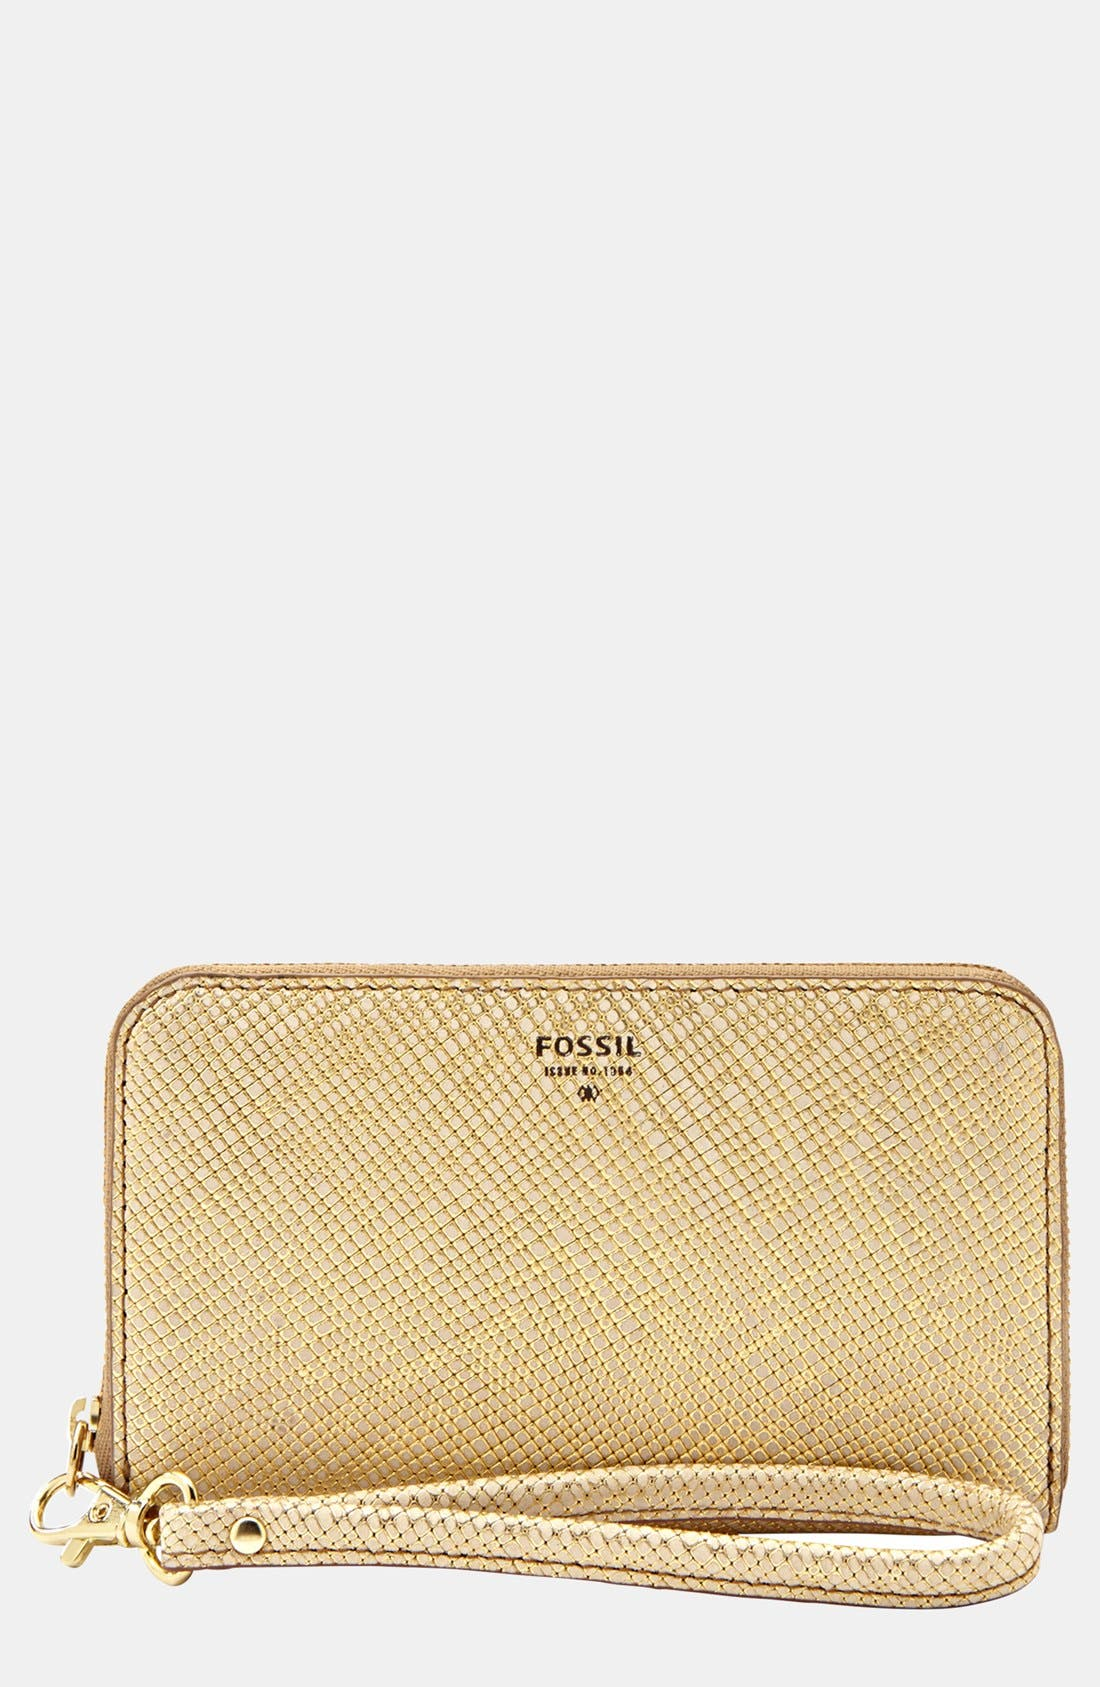 Alternate Image 1 Selected - Fossil 'Sydney' Zip Phone Wallet